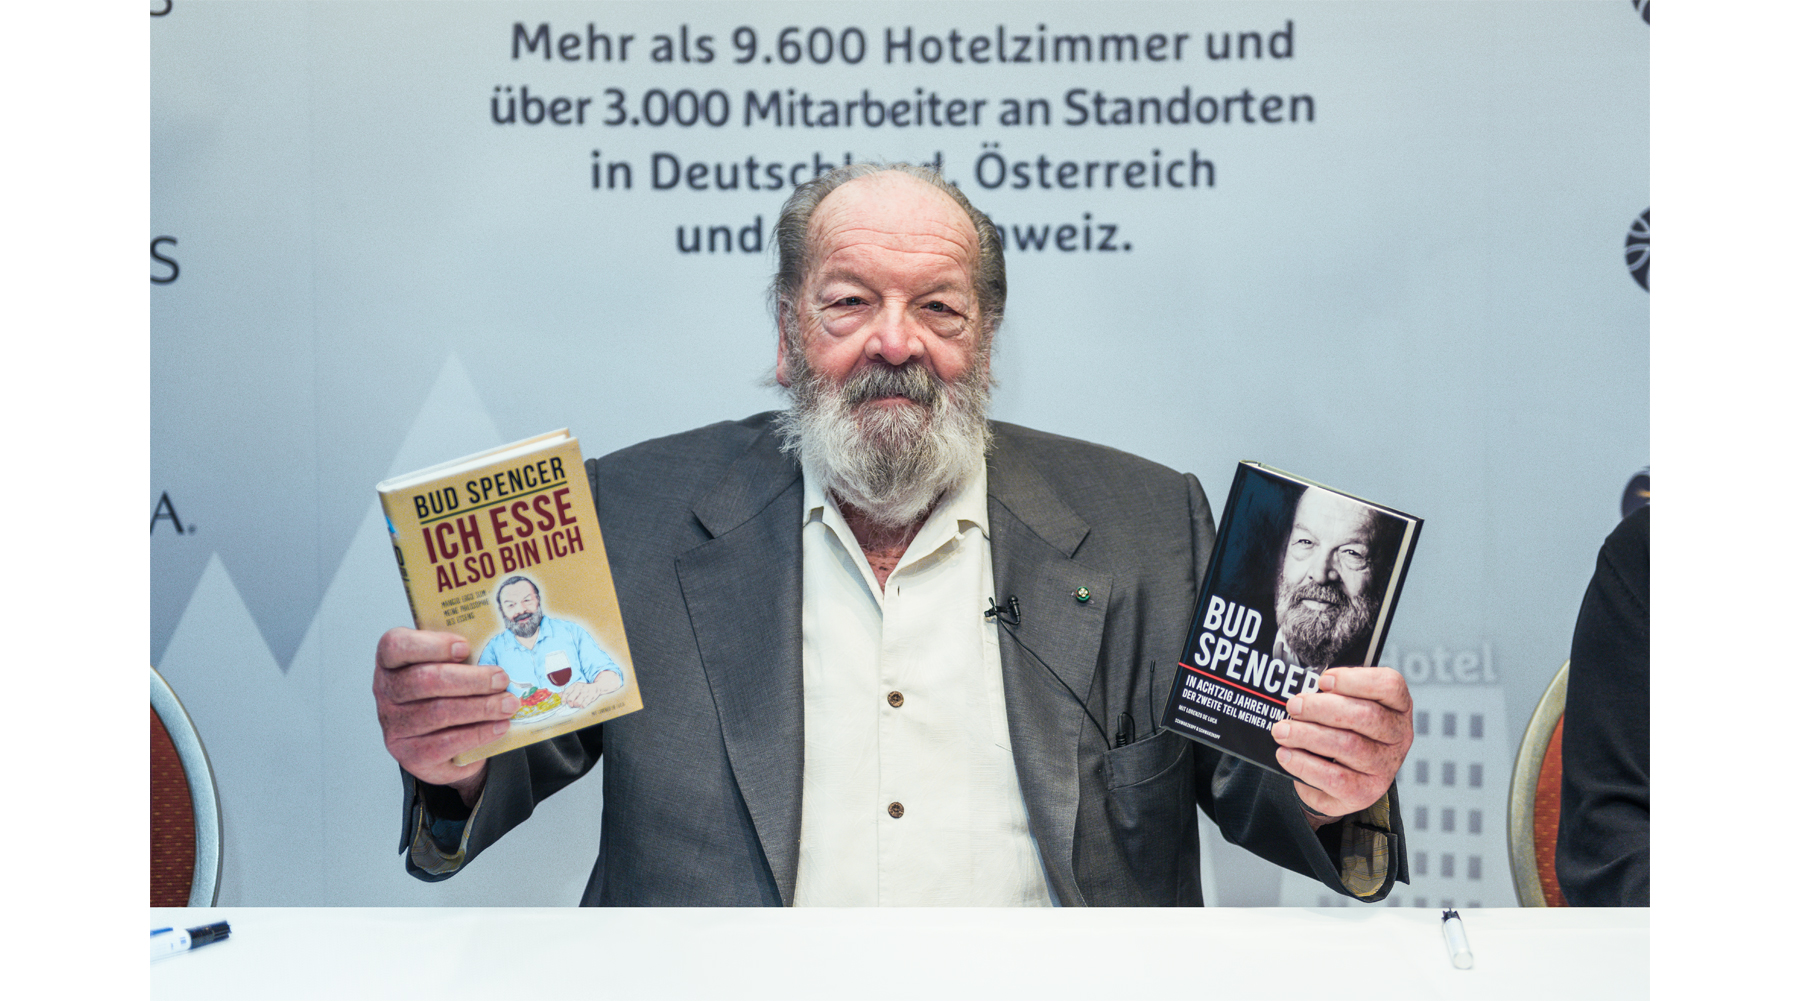 Bud_Spencer_MichelBuchmann